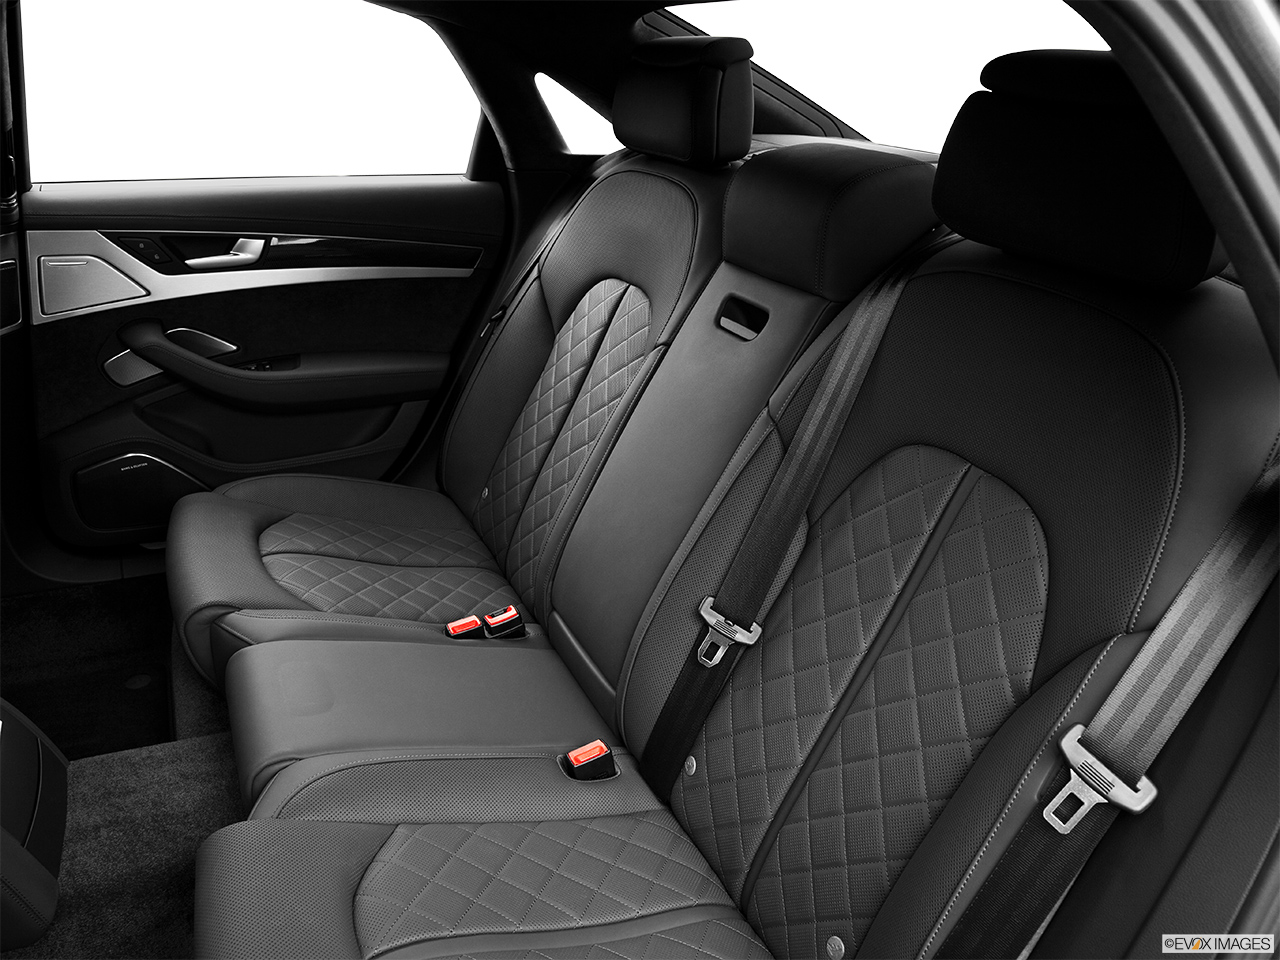 2014 Audi S8 4.0 TFSI Rear seats from Drivers Side.